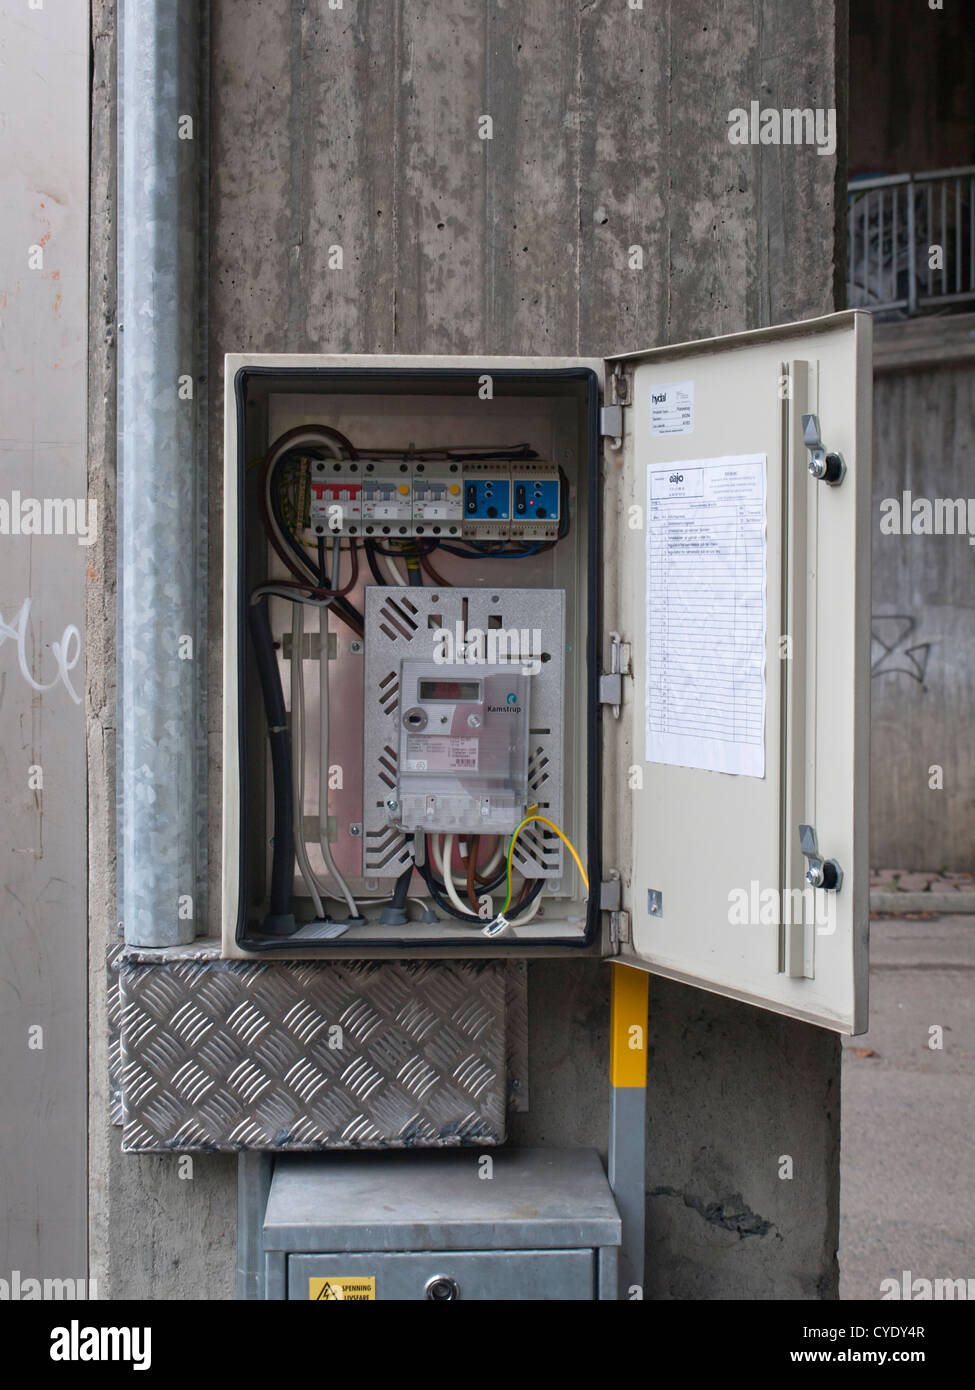 Open Electrical Fuse Box Opinions About Wiring Diagram In Car Outdoors Junction Connection Or For Passers Stock Photo Royalty Free Electric Power